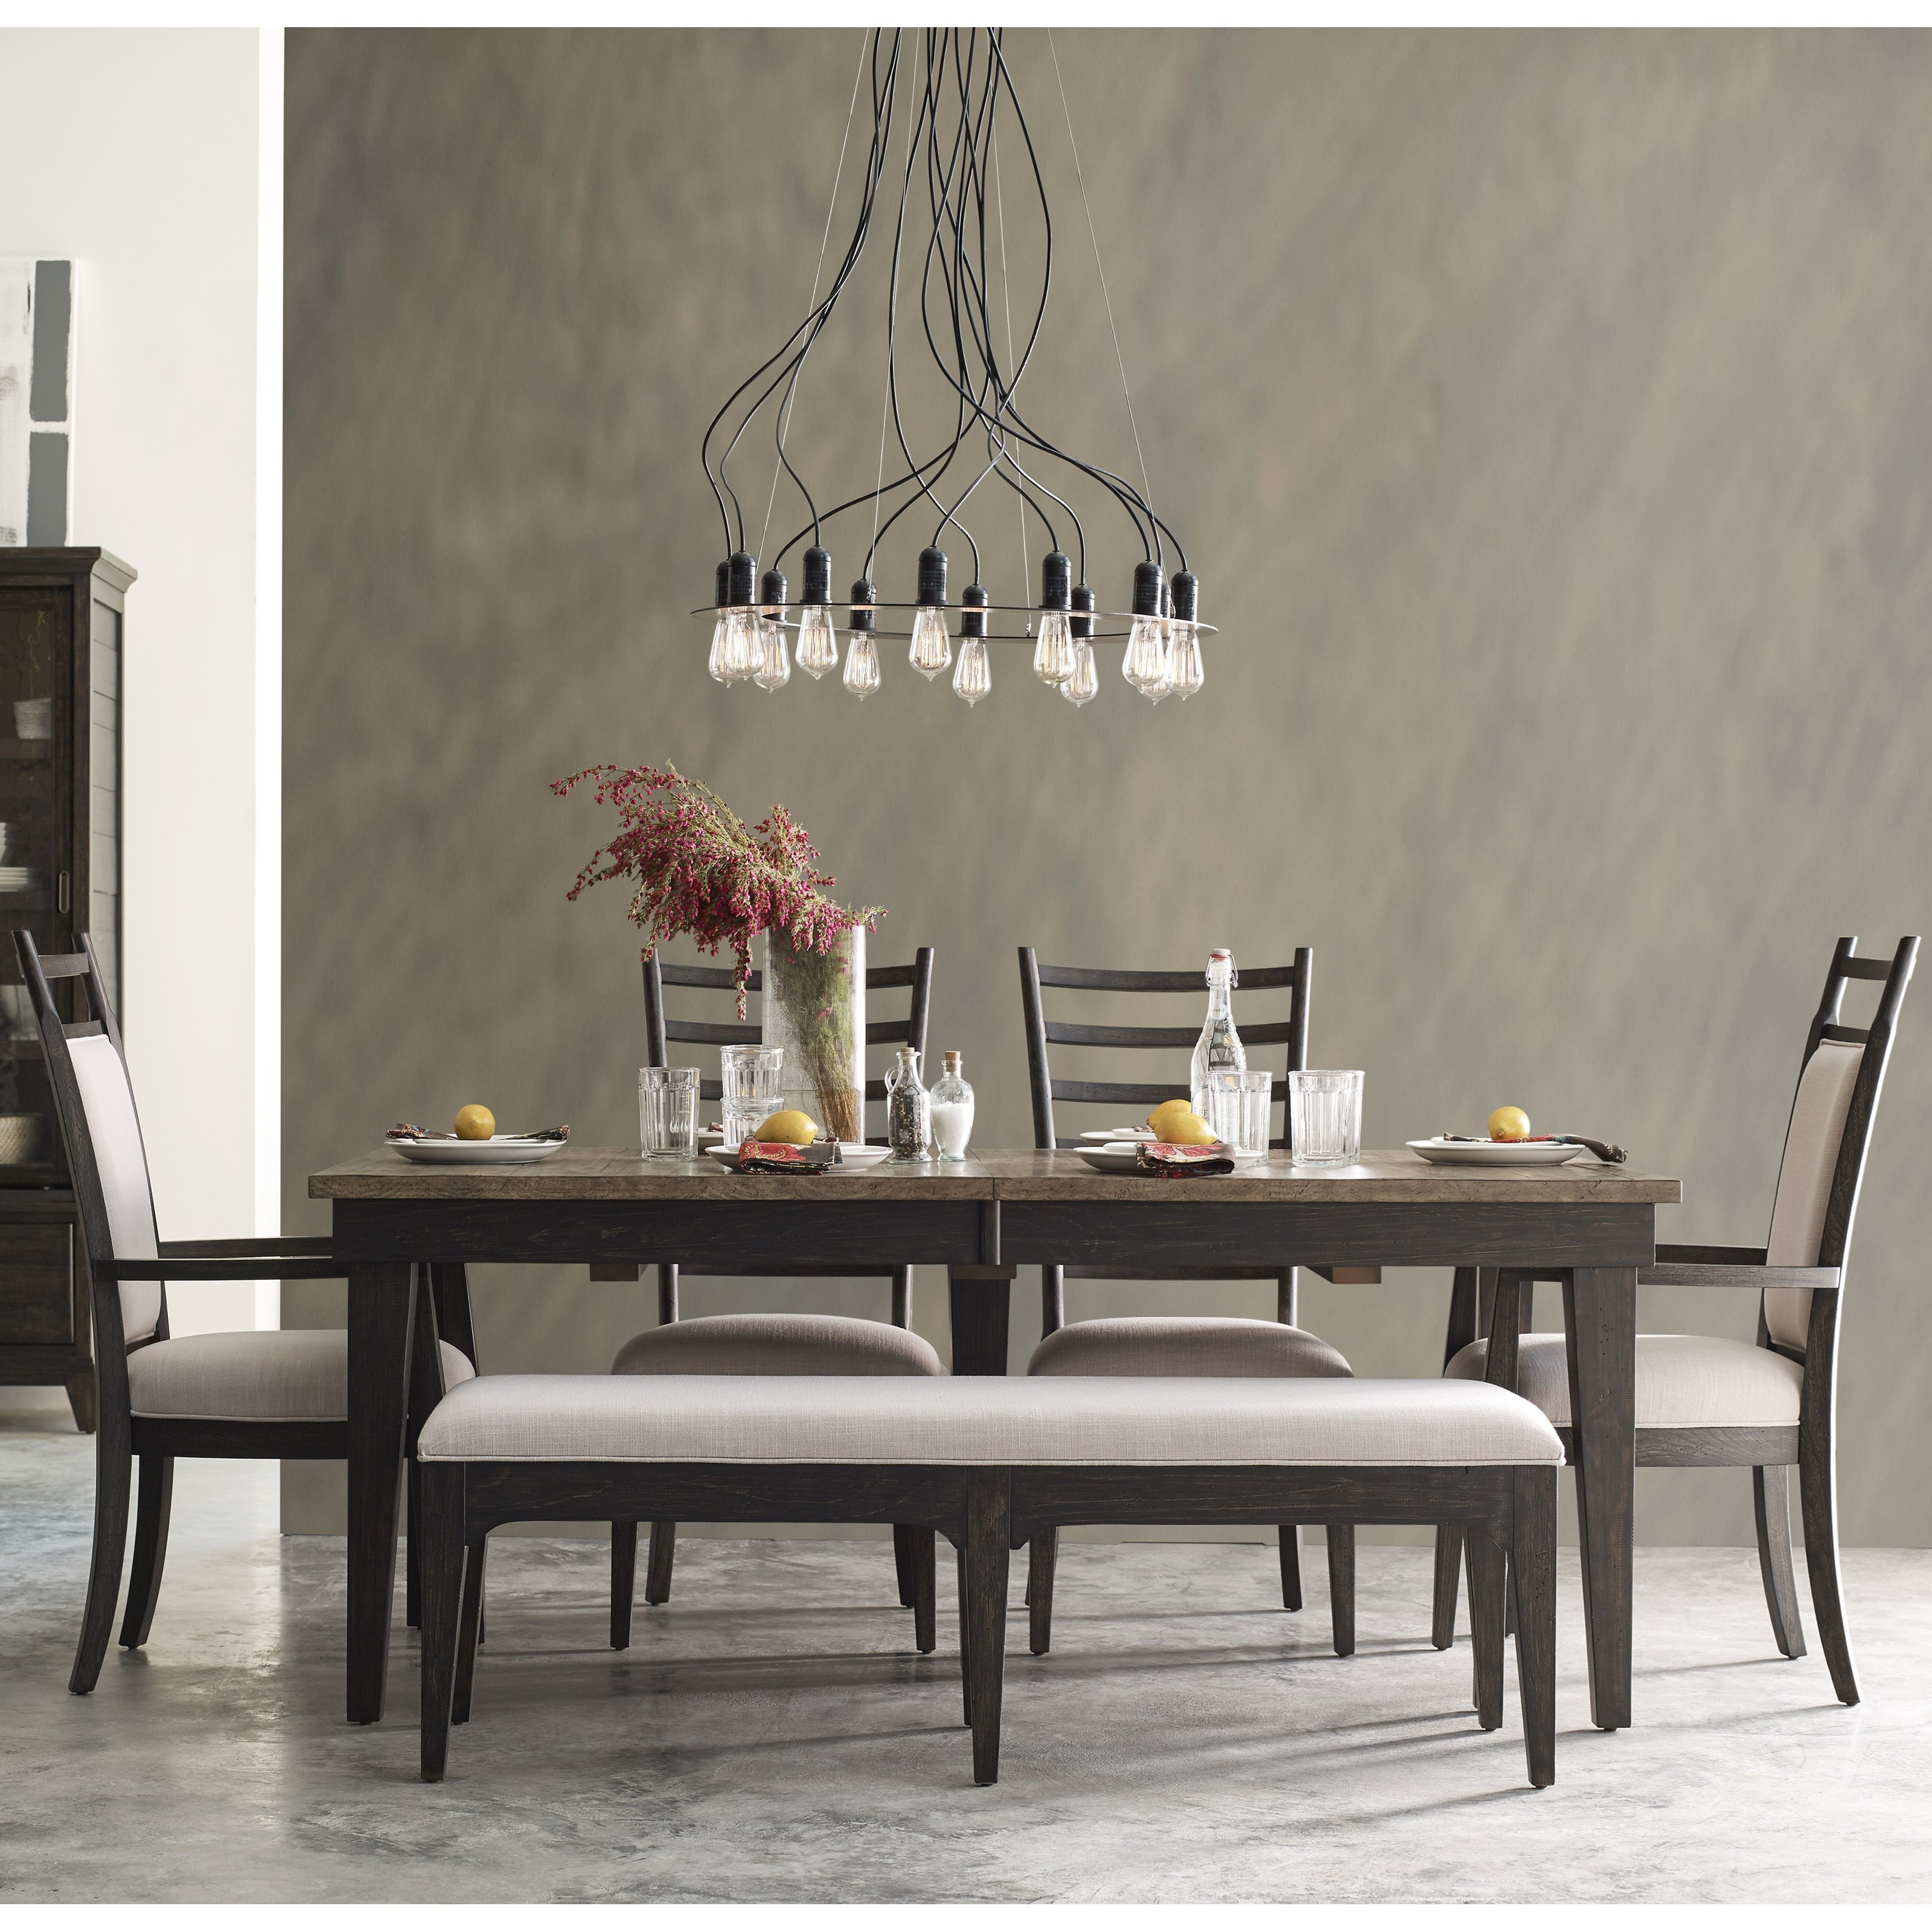 Plank Road 6 Pc Dining Set w/ Bench at Stoney Creek Furniture